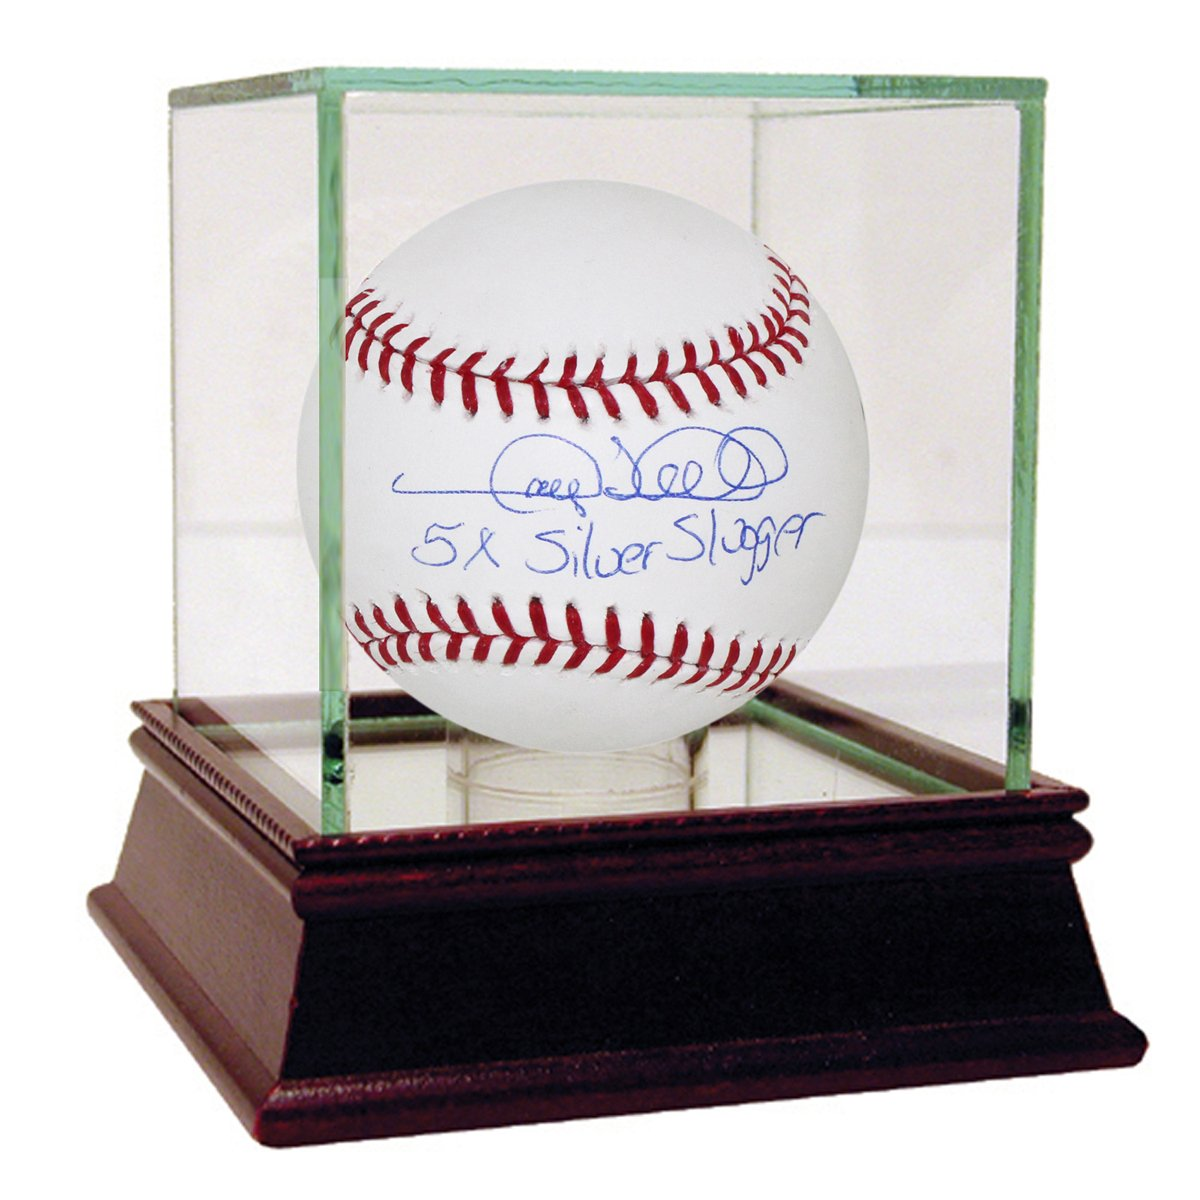 Steiner Sports MLB New York Yankees Gary Sheffield Signed Baseball with 5x Silver Slugger Inscribed SHEFBAS000006